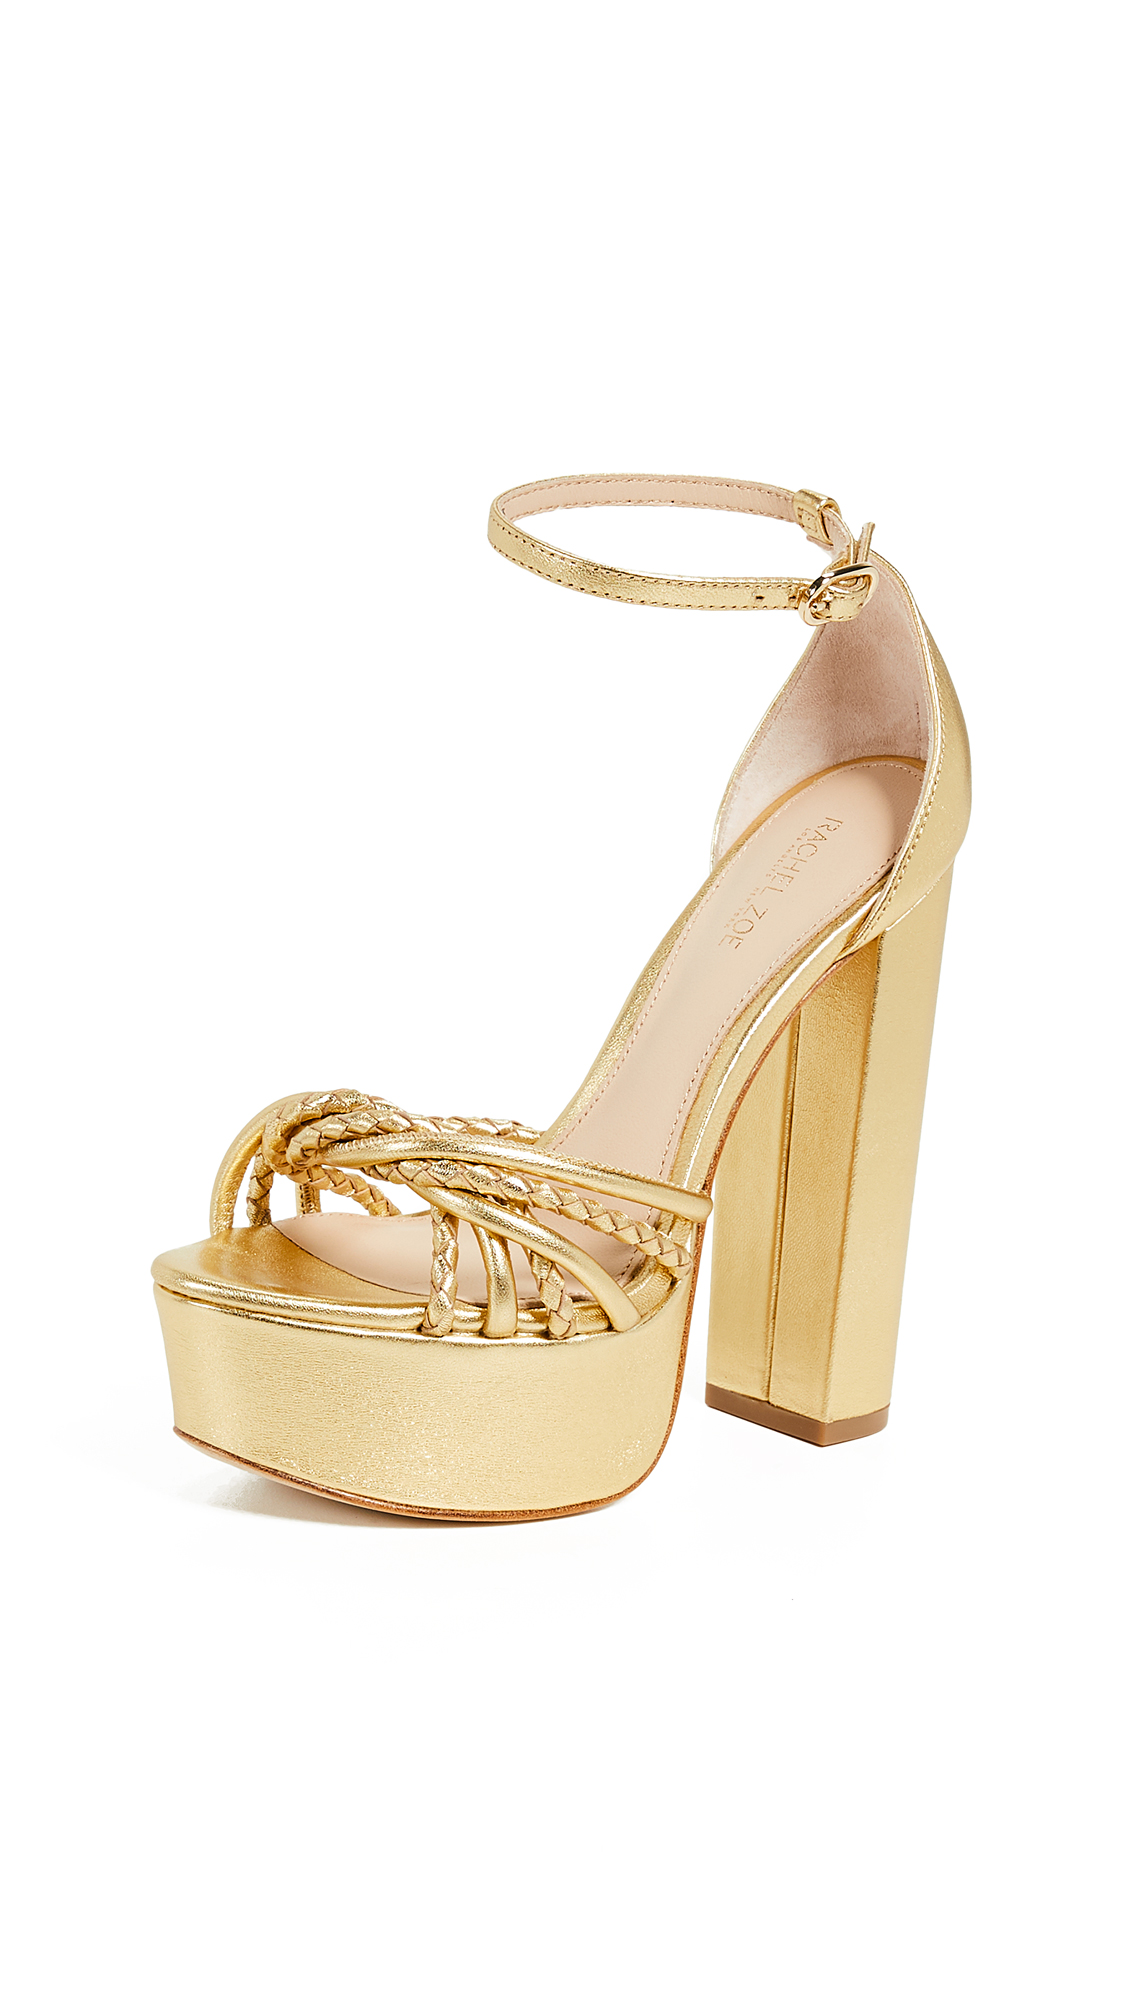 Rachel Zoe Kinsley Platform Sandals